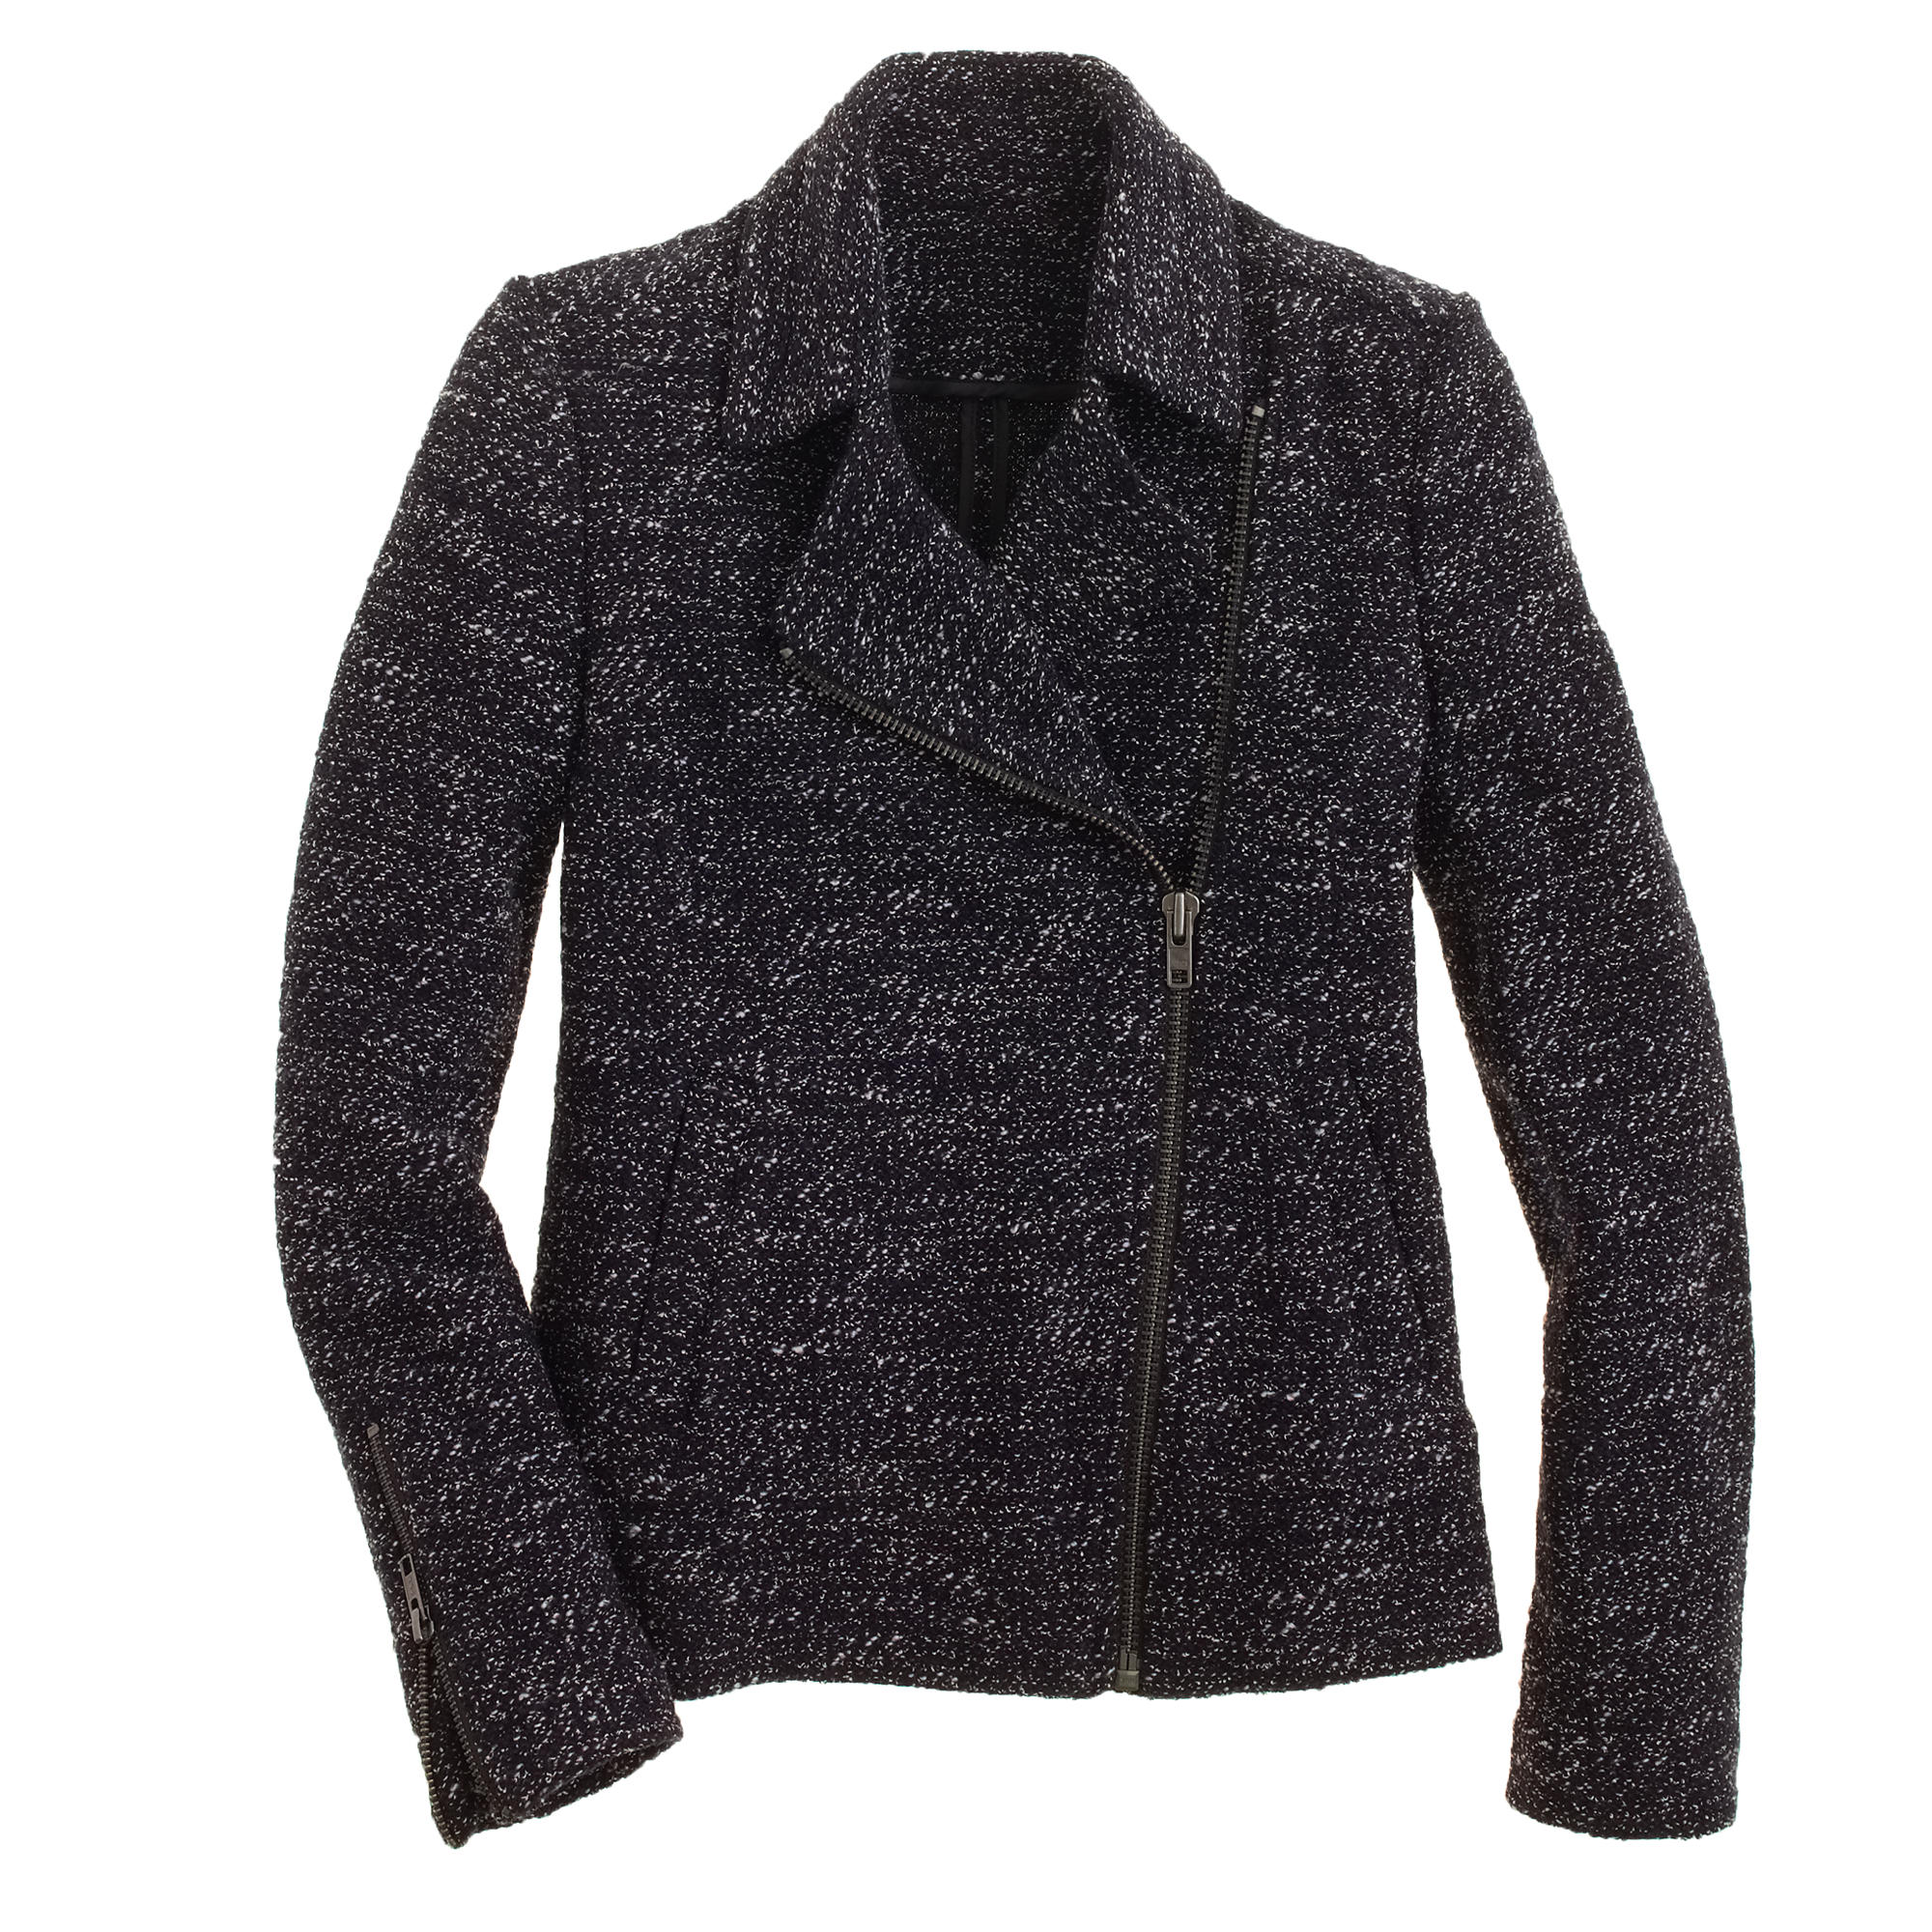 ‎‎Are you looking for Karl Lagerfeld ‎Women‎'s ‎Coated Bouclé Biker Jacket ‎? Discover all the details on tanzaniasafarisorvicos.ga Fast delivery and secure payment.